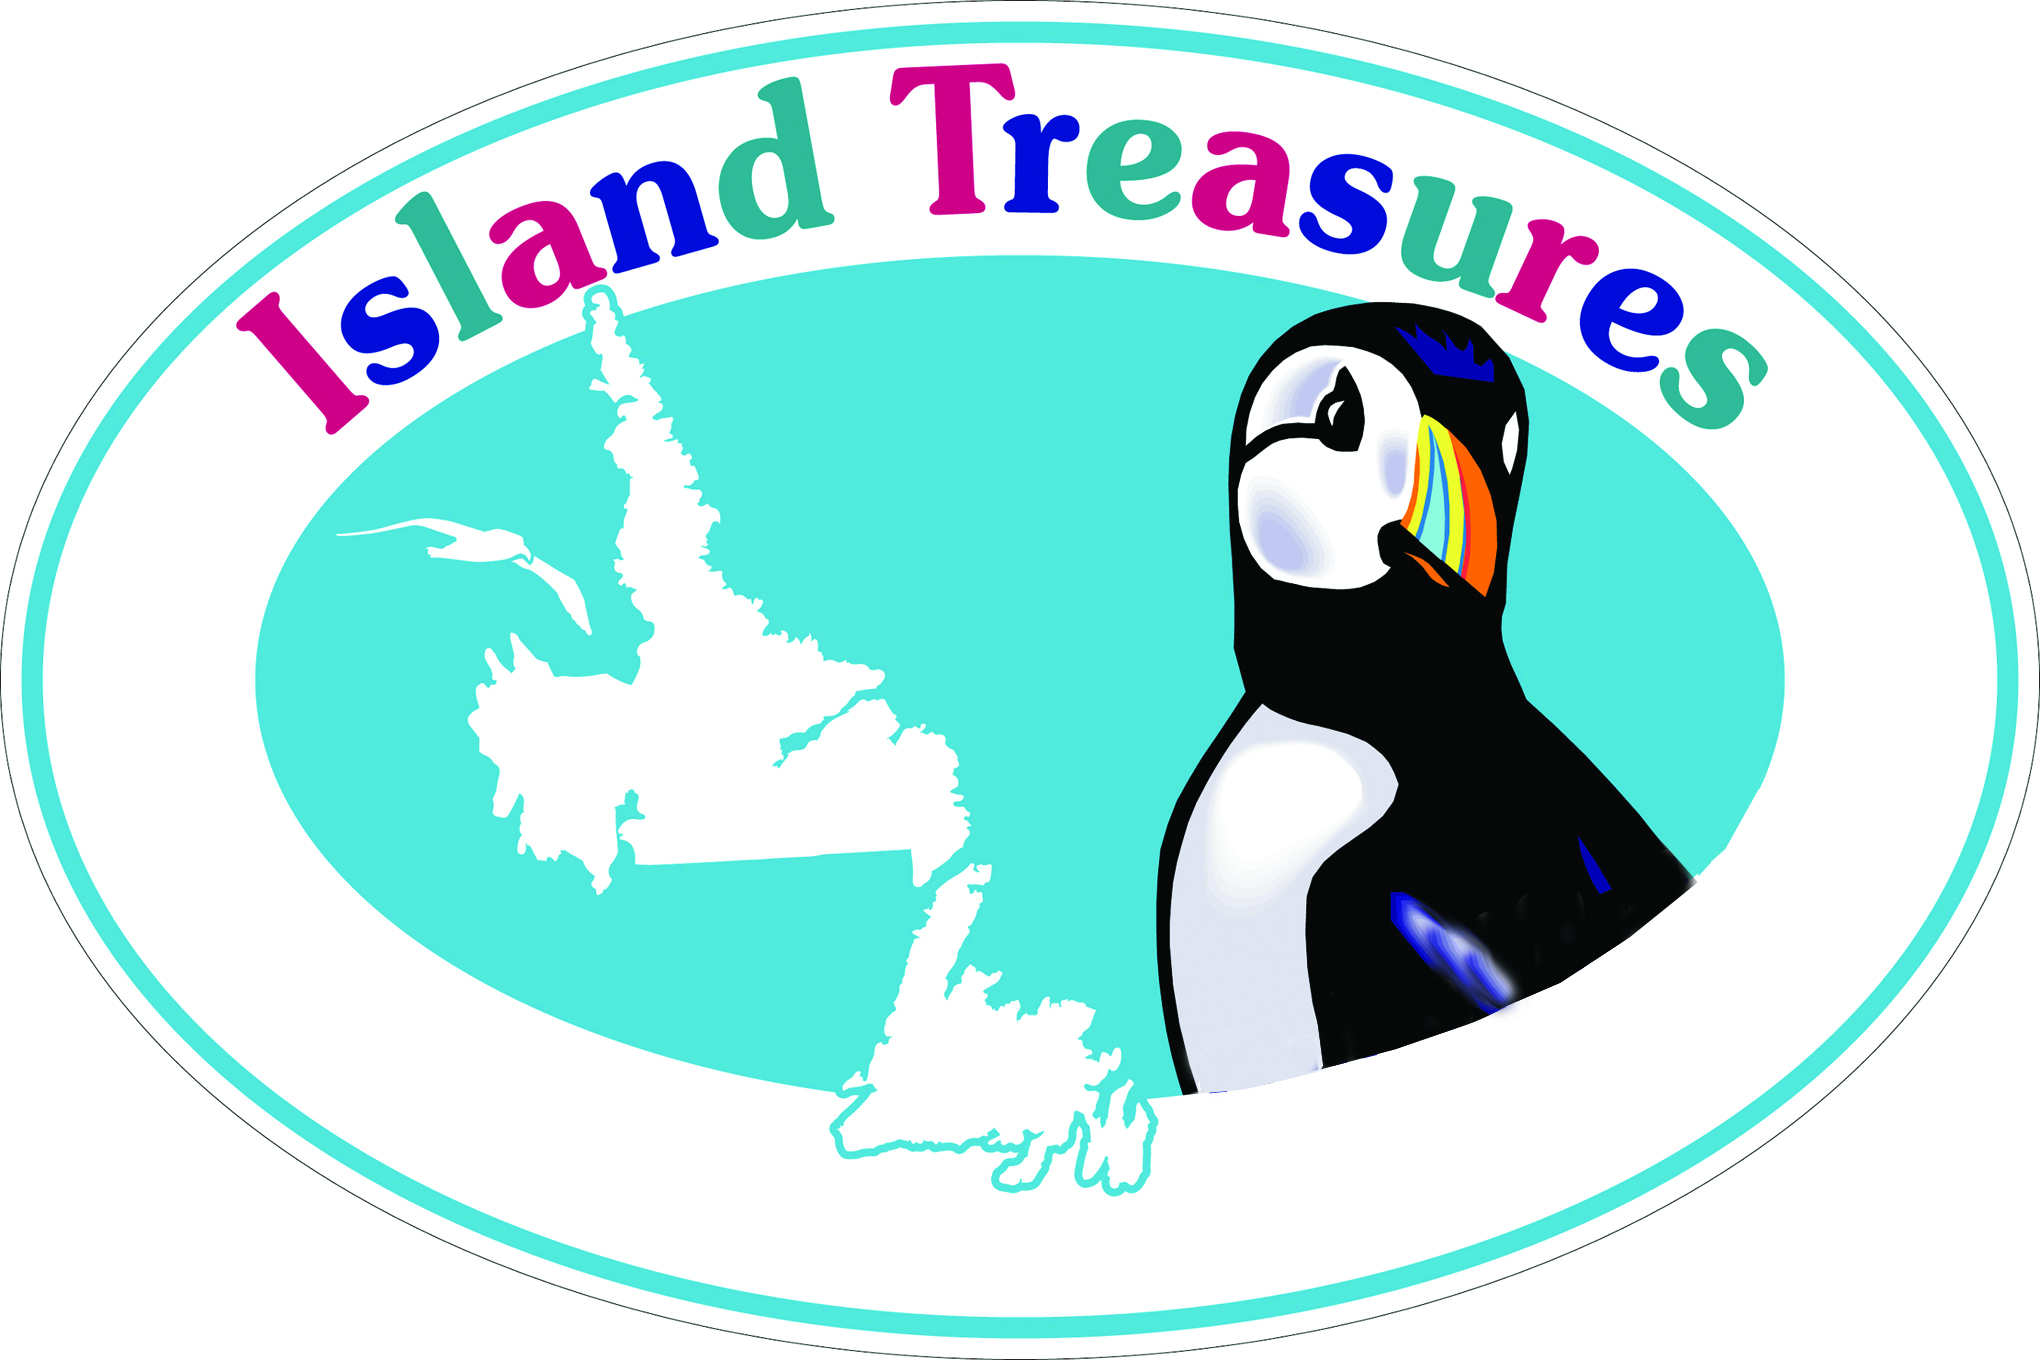 $10.00 - Commemorative Pins are available at Island Treasures, Corner Brook Plaza. You can pick up at the store or contact them at 709 634 9813 and the pins will be sent to you in the mail